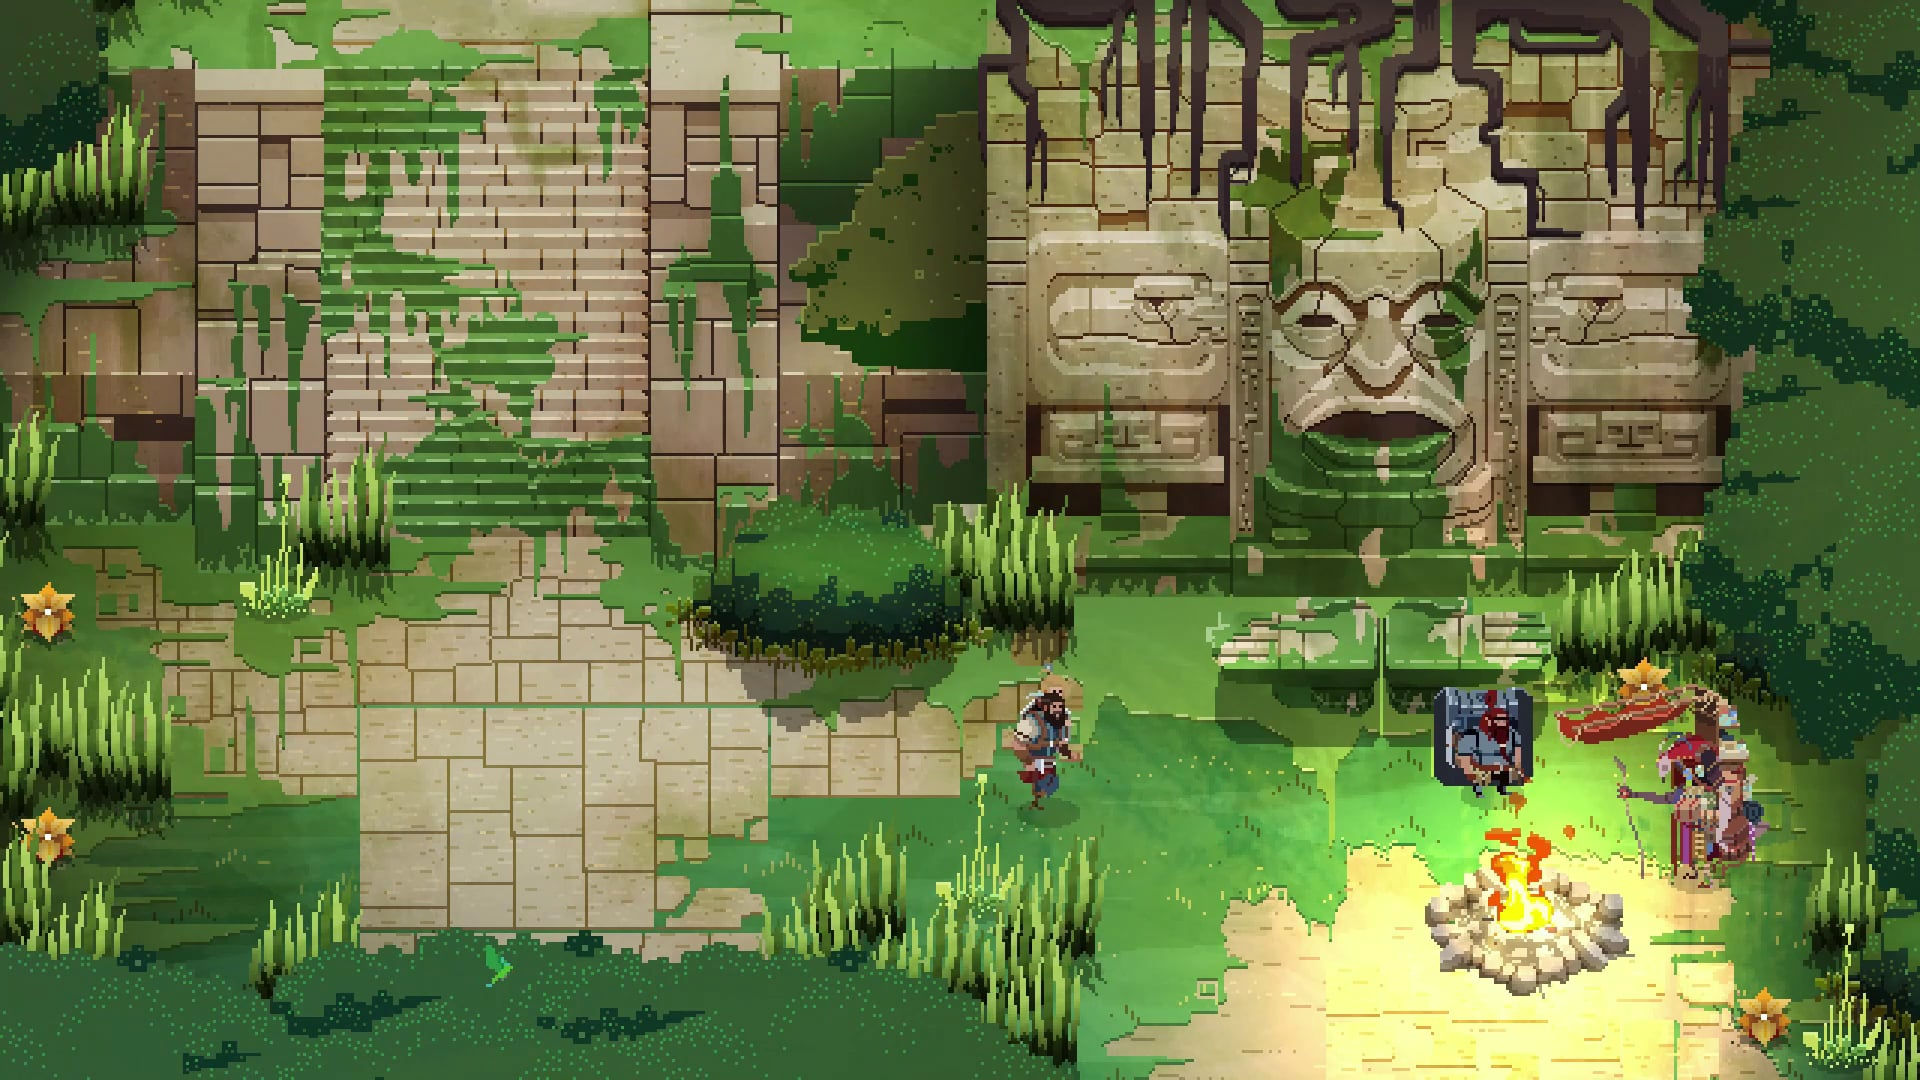 No Place for Bravery preview Glitch Factory top-down action RPG soulslike with beautiful pixel art and heartfelt narrative